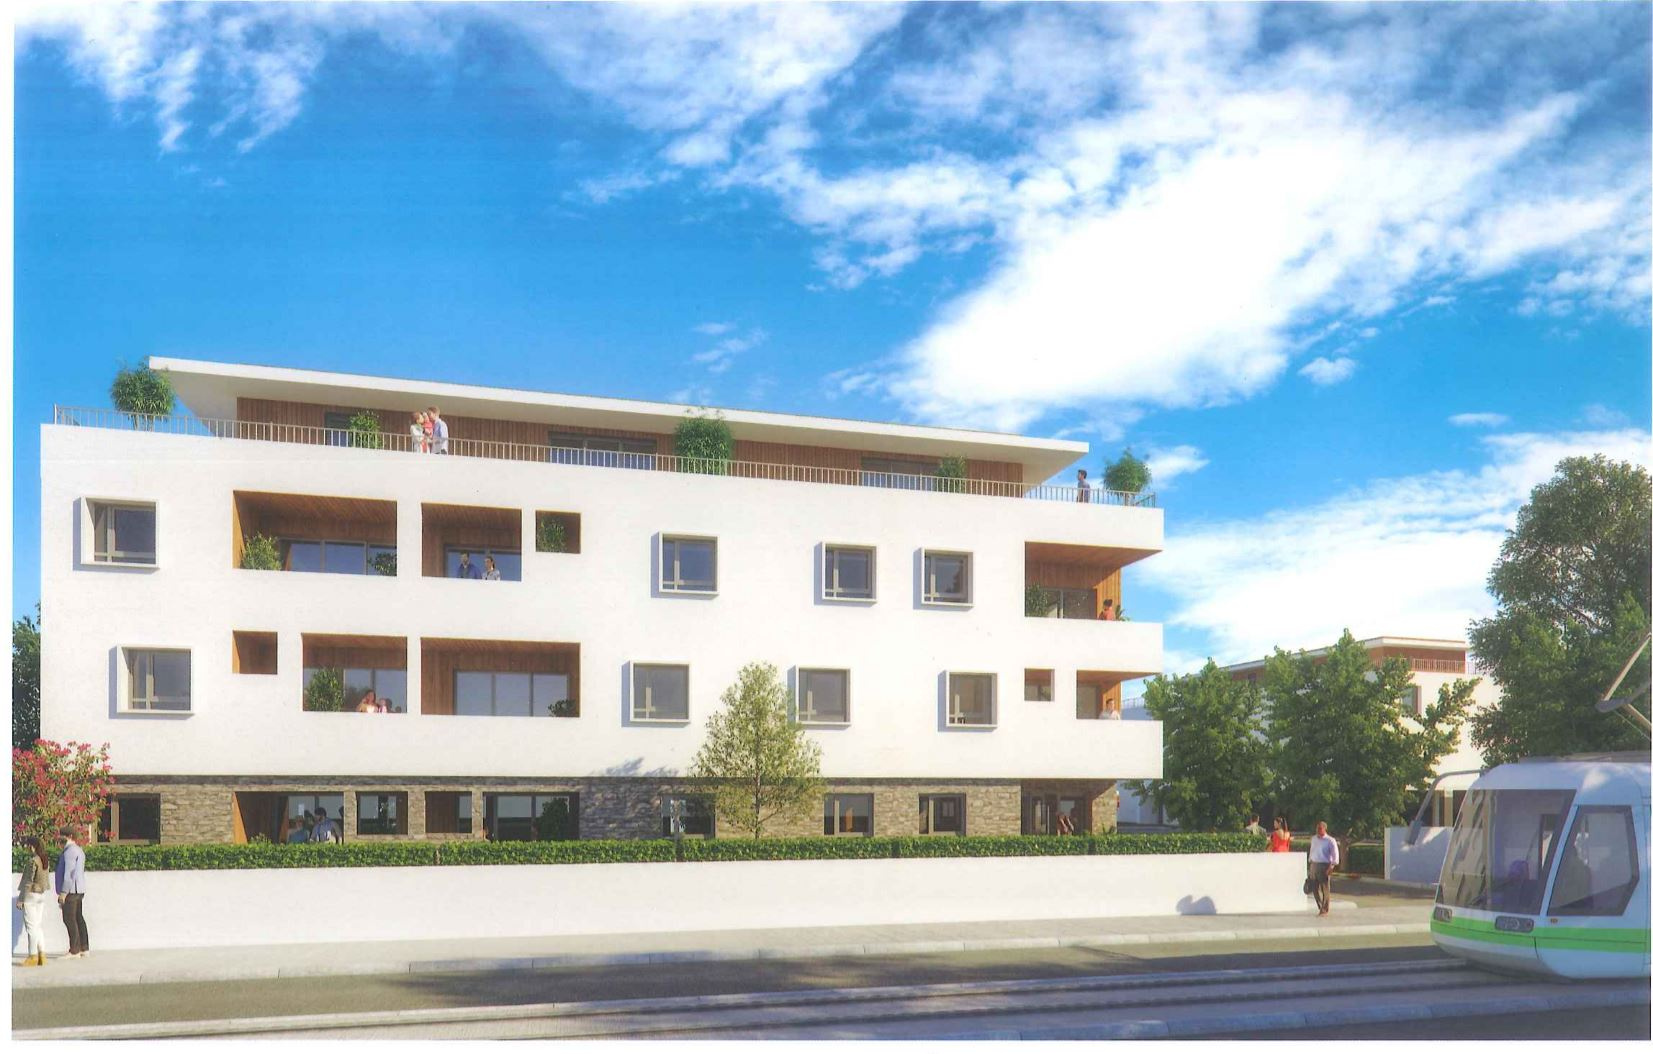 Vente appartement t3 neuf de 64 m pessac for Appartement t3 neuf